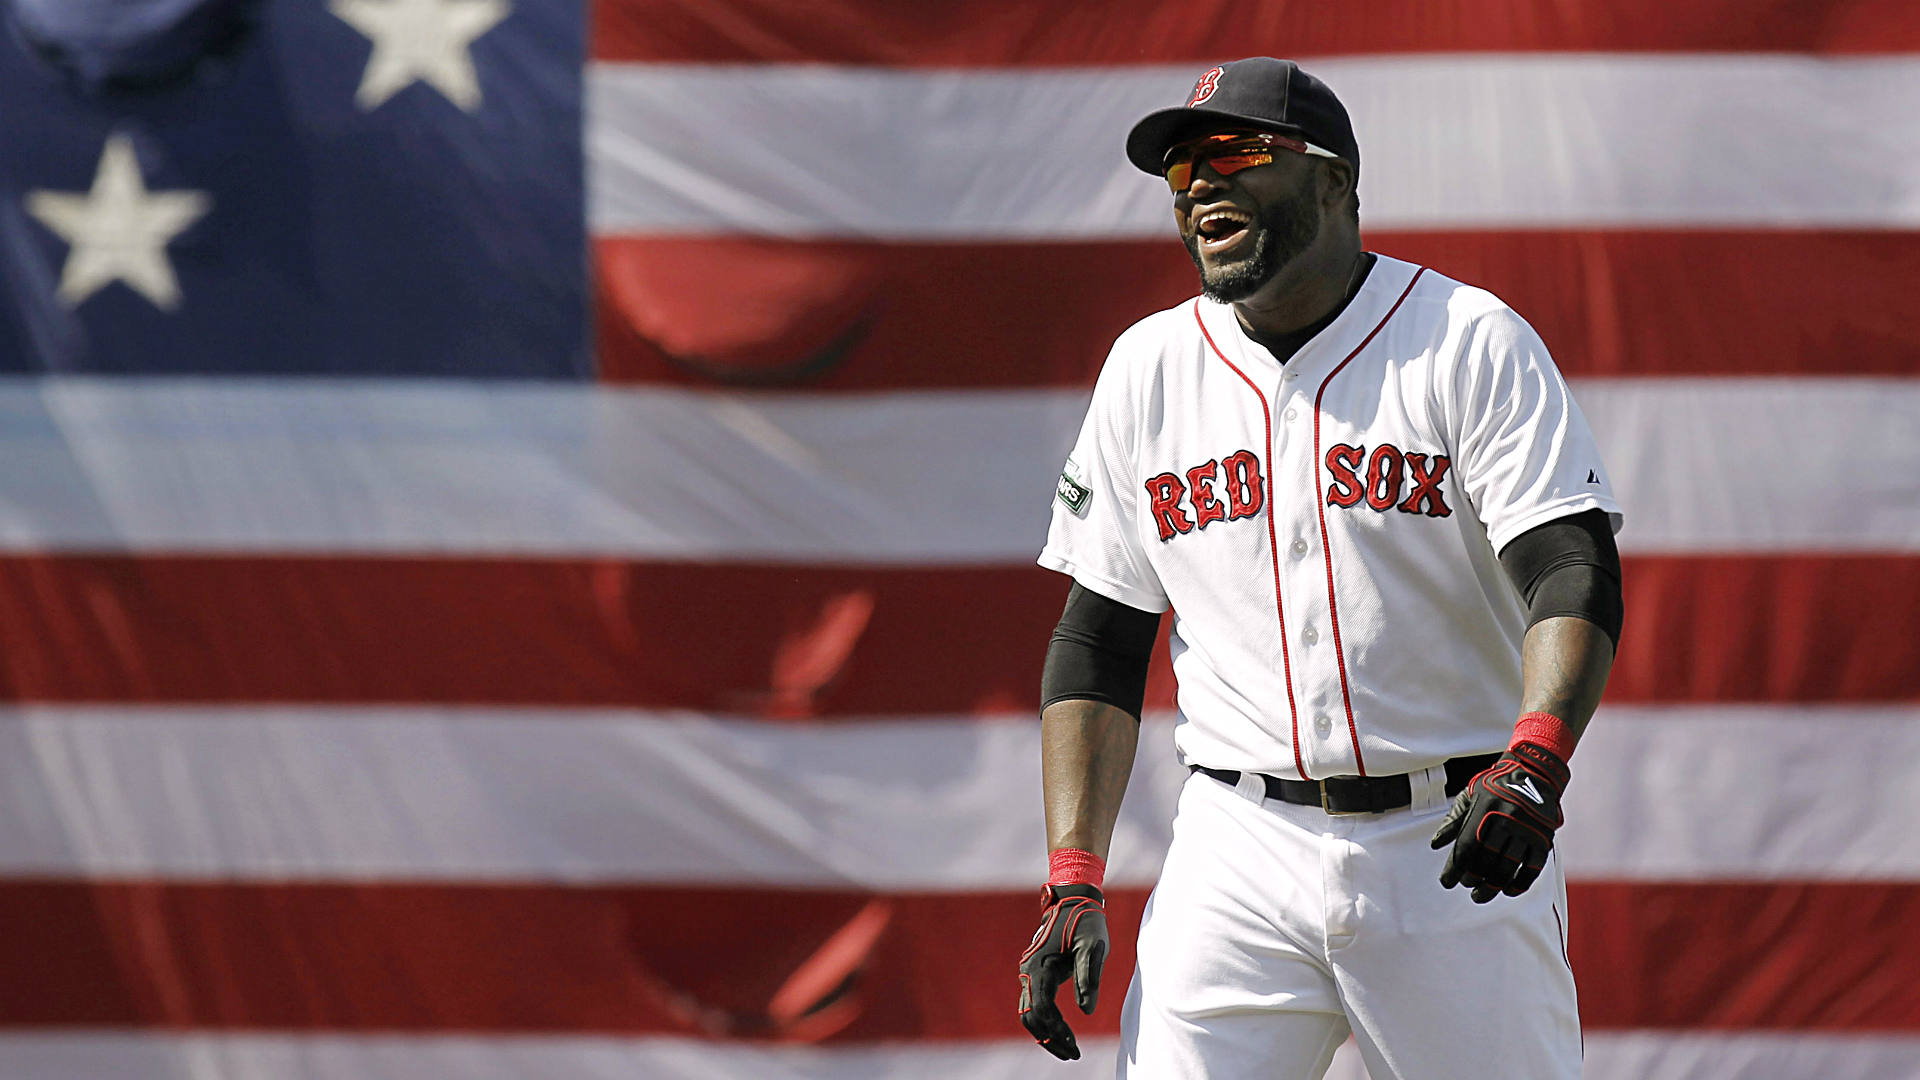 David Ortiz says he belongs in the Hall of Fame; is he right?